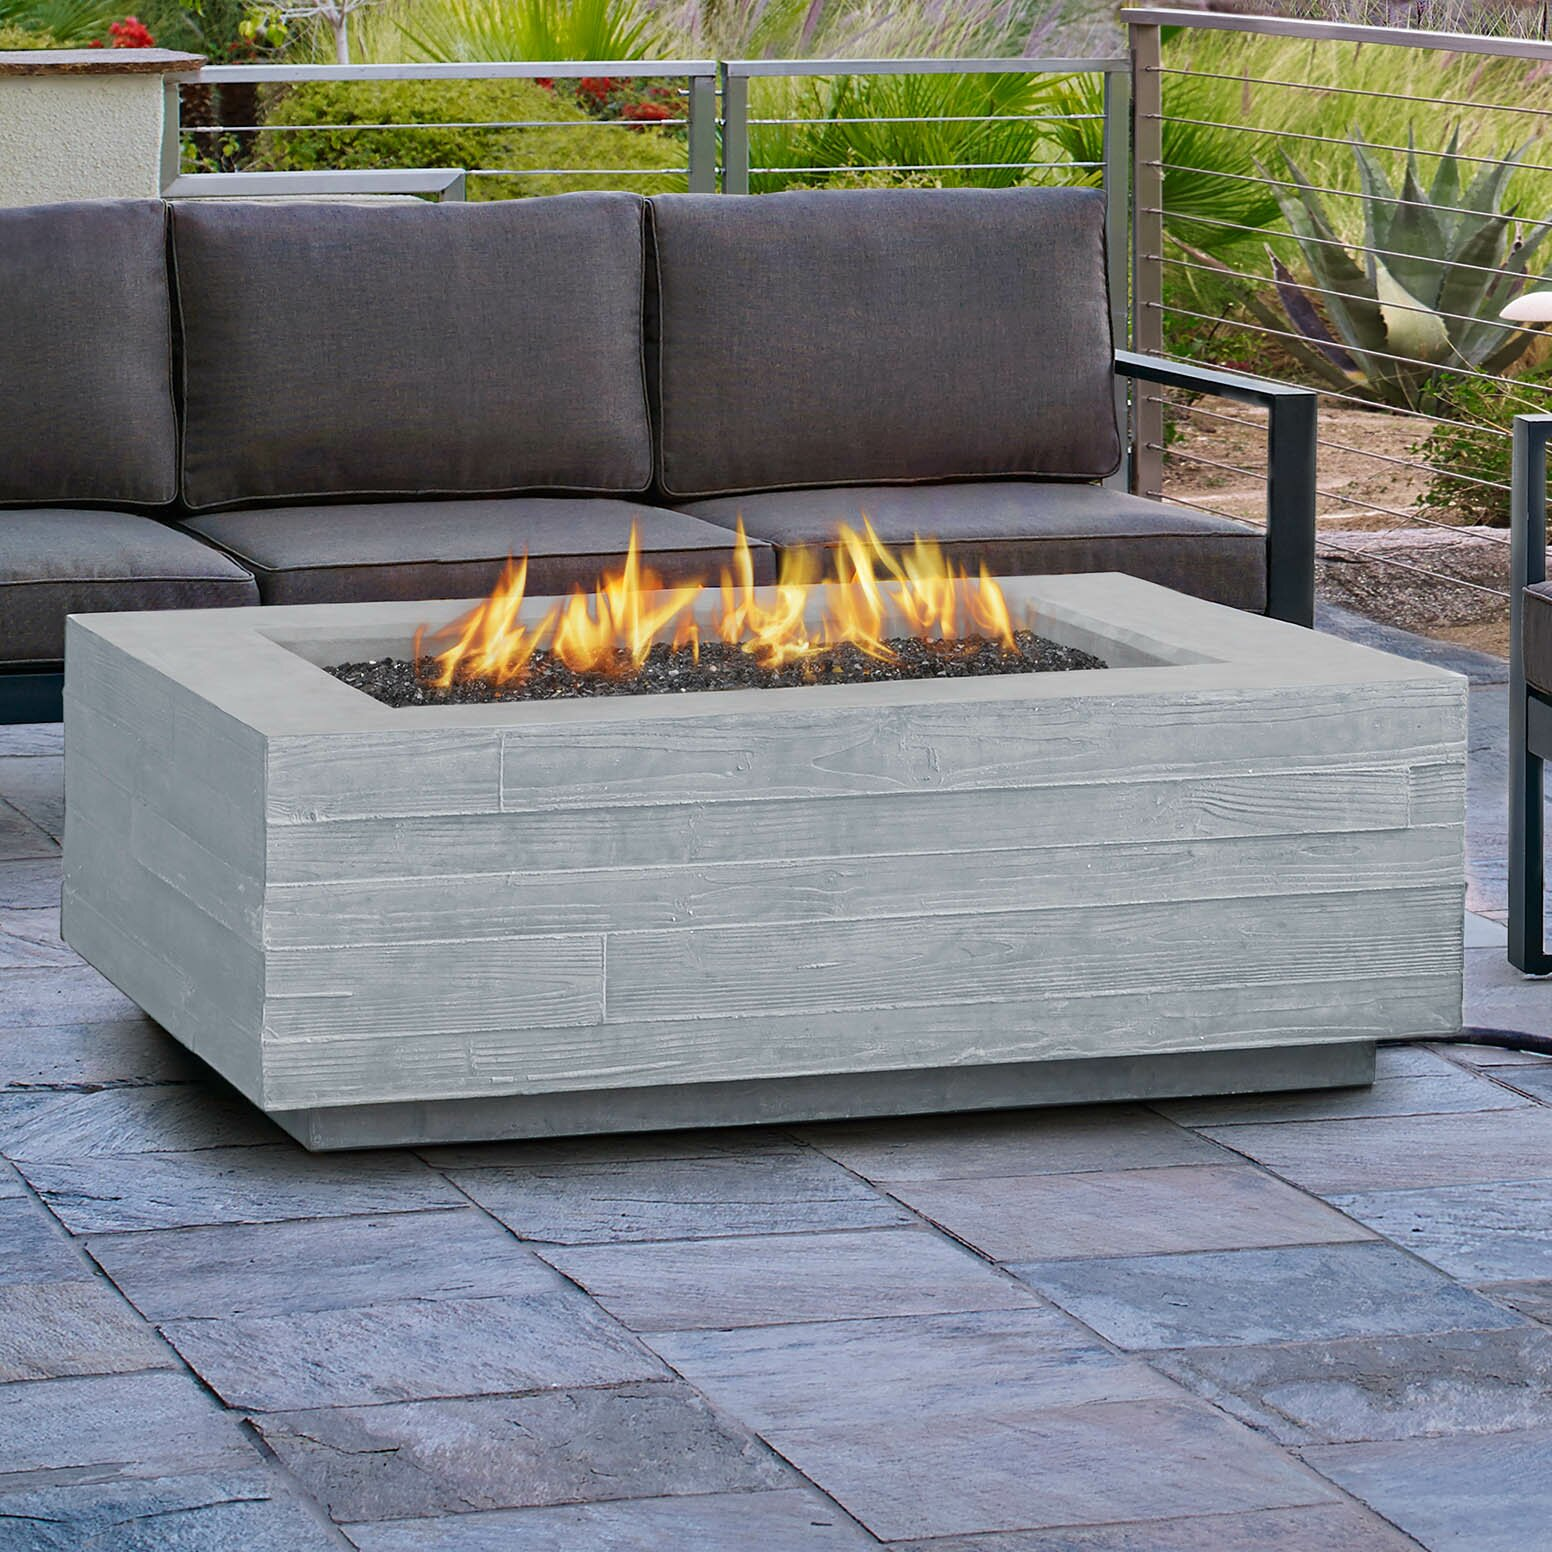 Board Form Propane Outdoor Fireplace